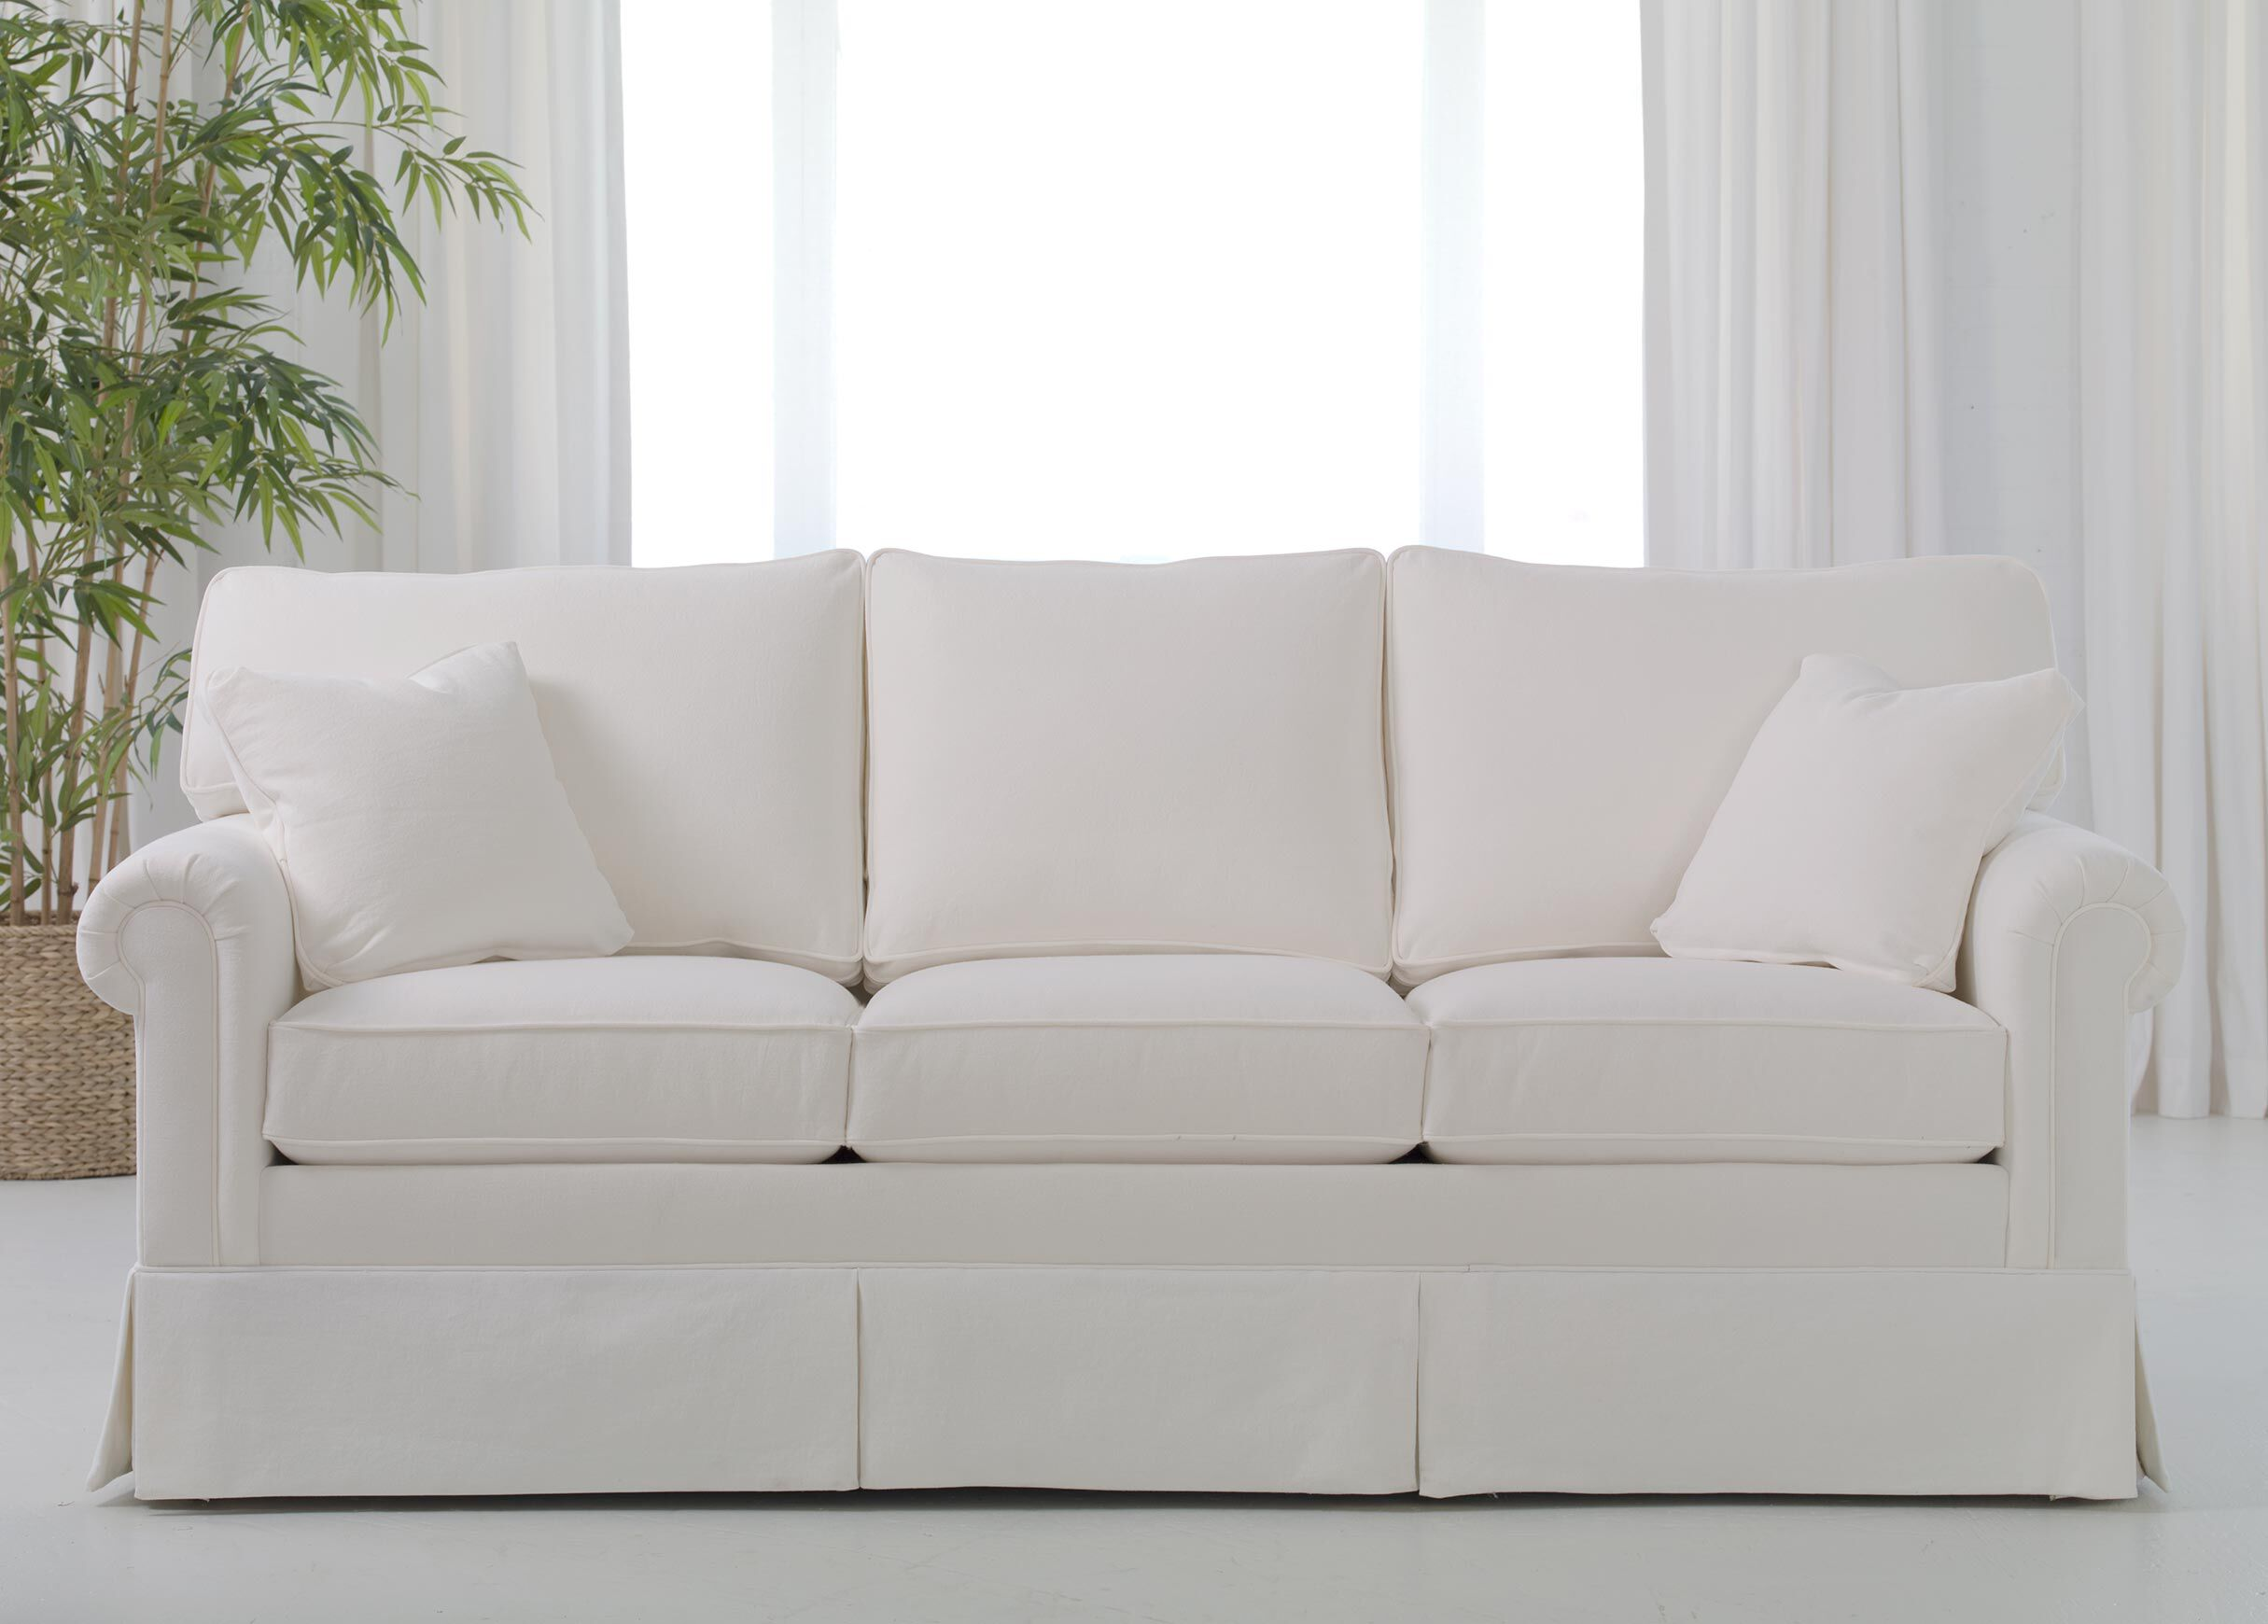 paramount sofa brands made in canada panel arm sofas and loveseats